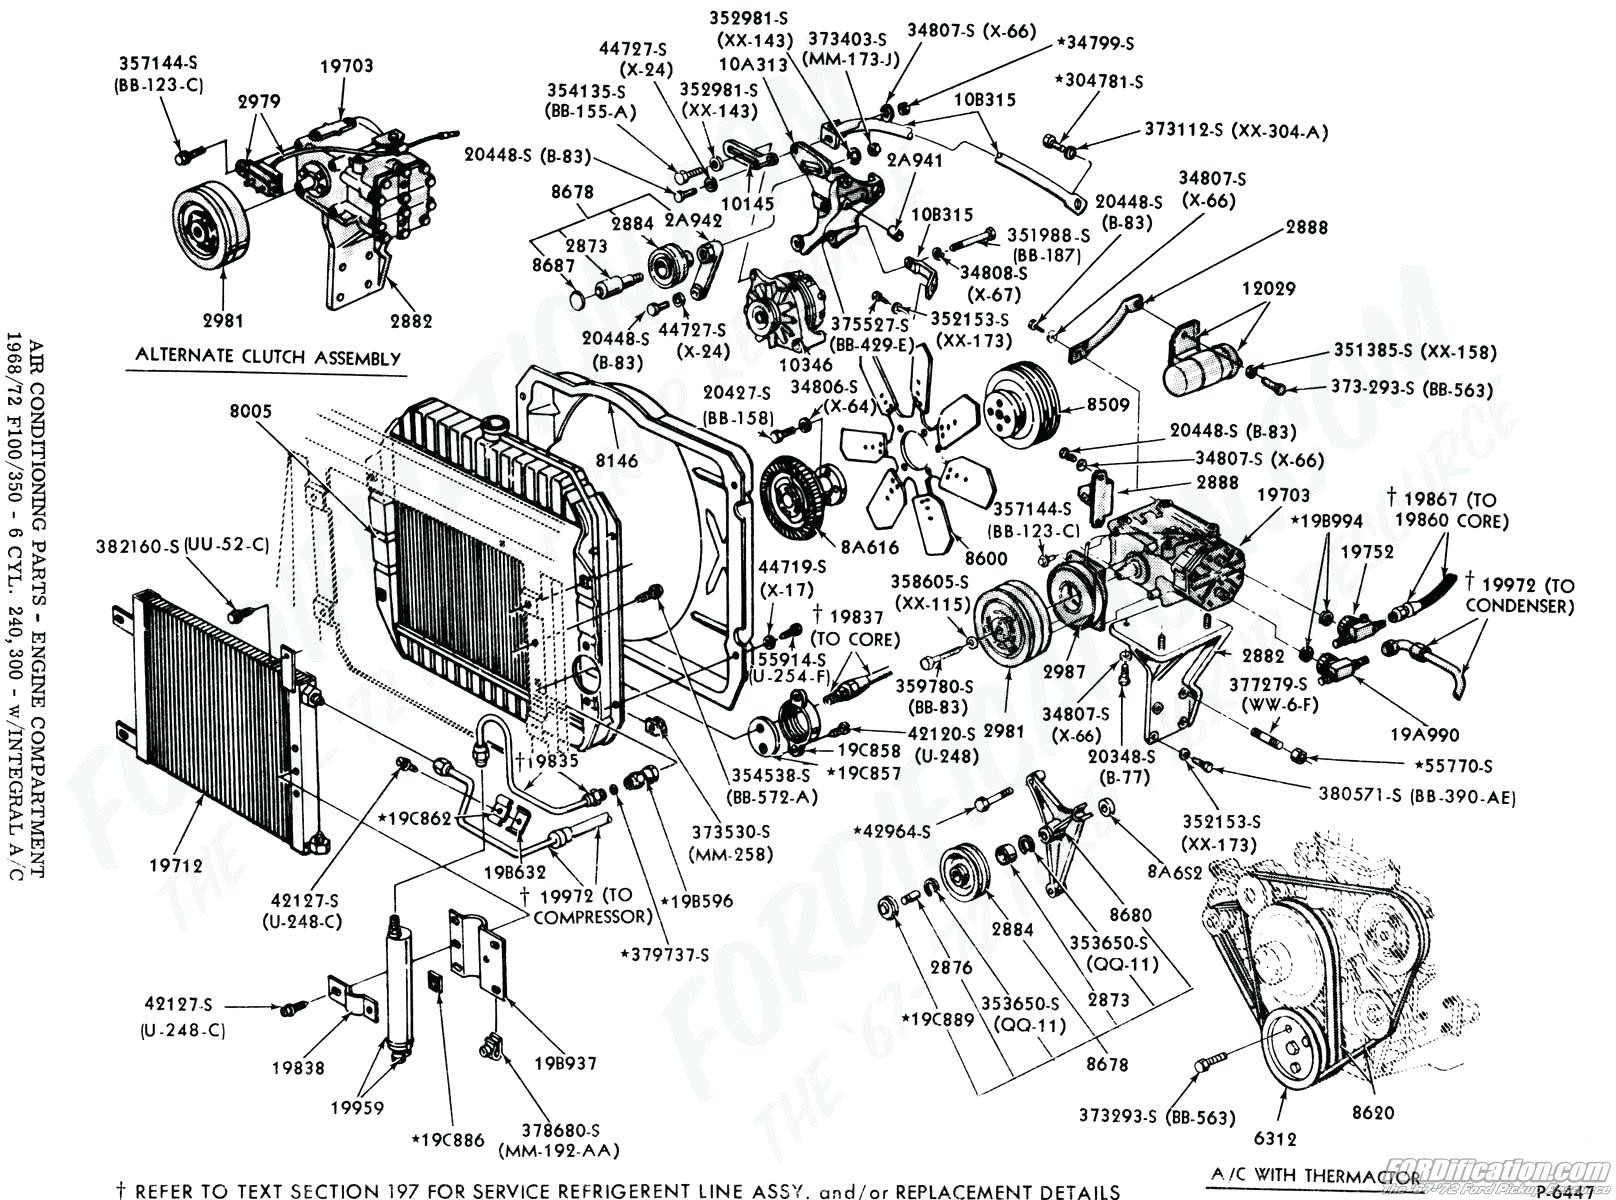 [QNCB_7524]  DIAGRAM] 68 Ford 302 Engine Diagram Free Download FULL Version HD Quality  Free Download - G1SIVY7UHB.CHEFSCUISINIERSAIN.FR | 1997 Ford Explorer 302 Engine Diagram |  | g1sivy7uhb chefscuisiniersain fr